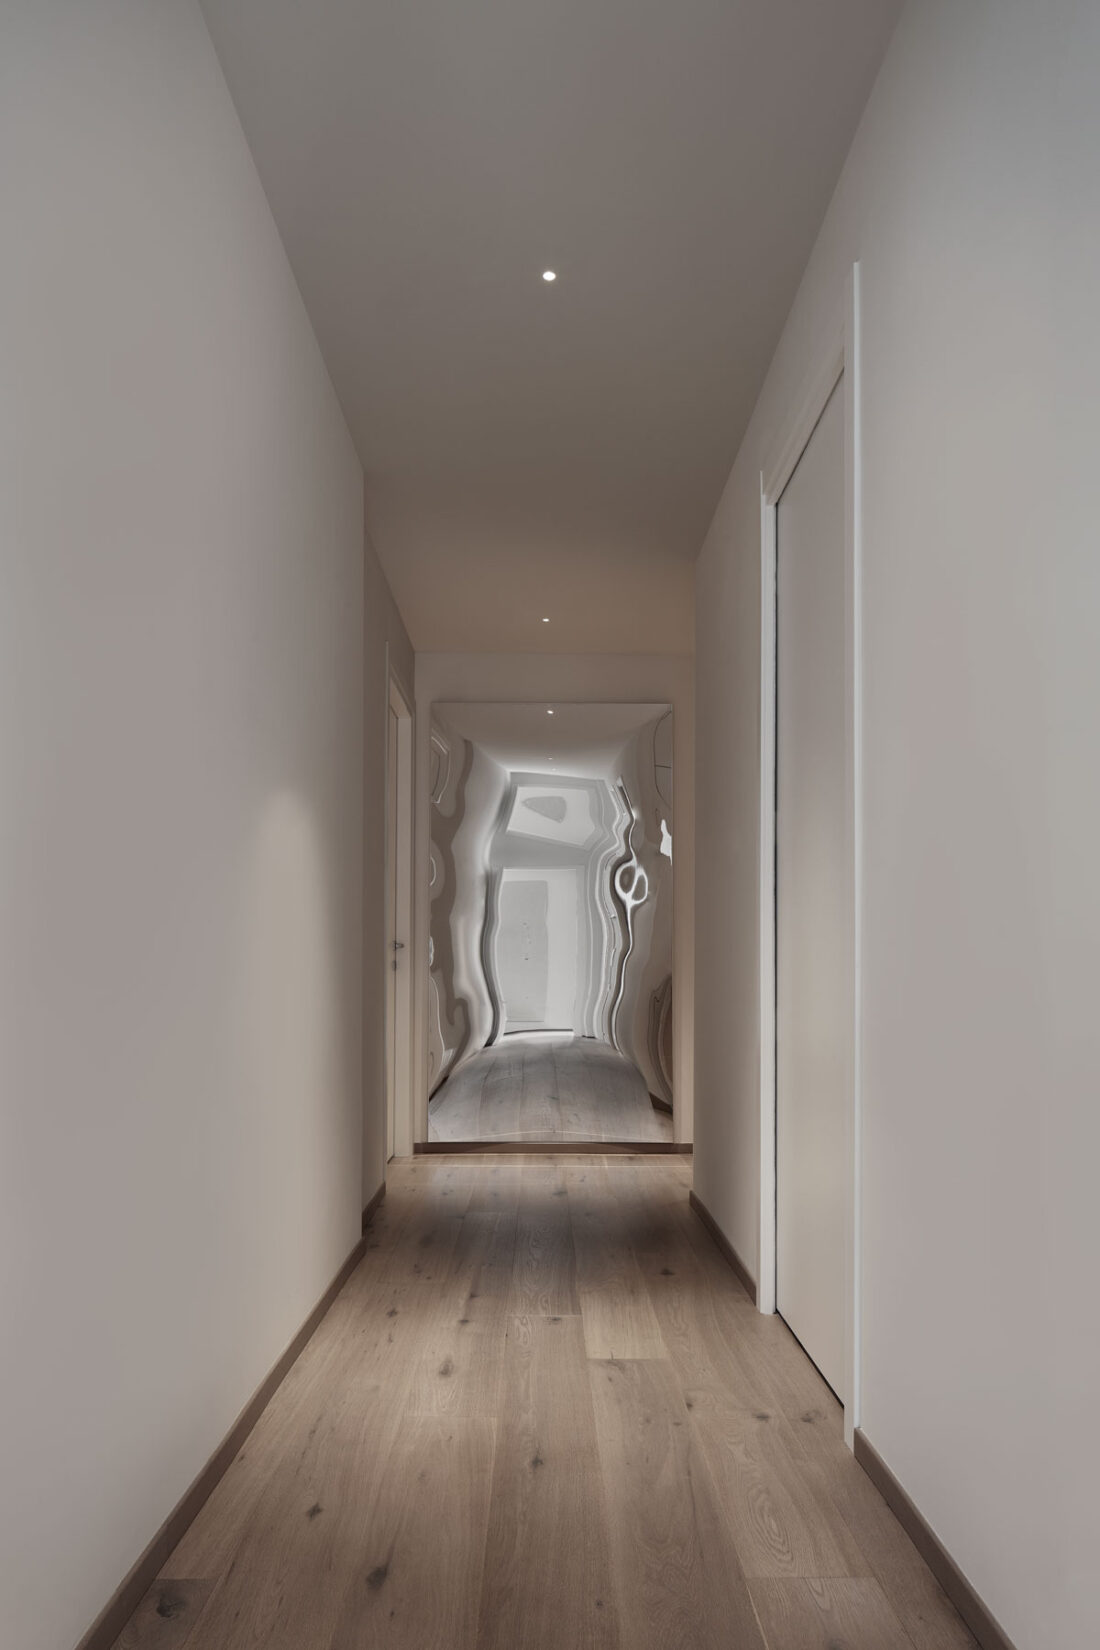 minimal white corridor with an artistic distorting mirror at night